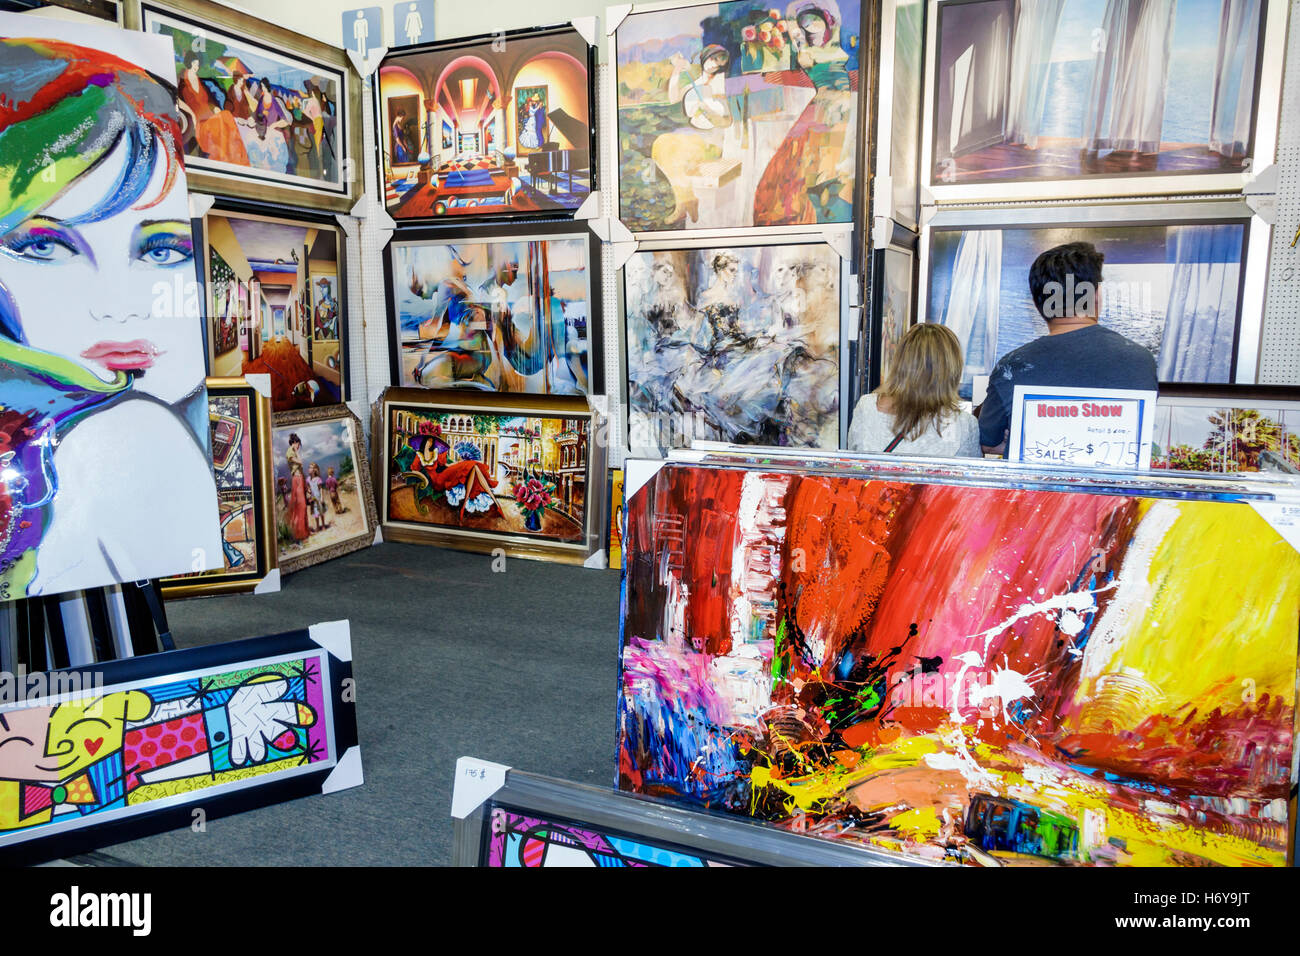 Florida Miami Beach Convention Center Centre Home Design And Remodeling Show  Framed Art Display Sale Gallery